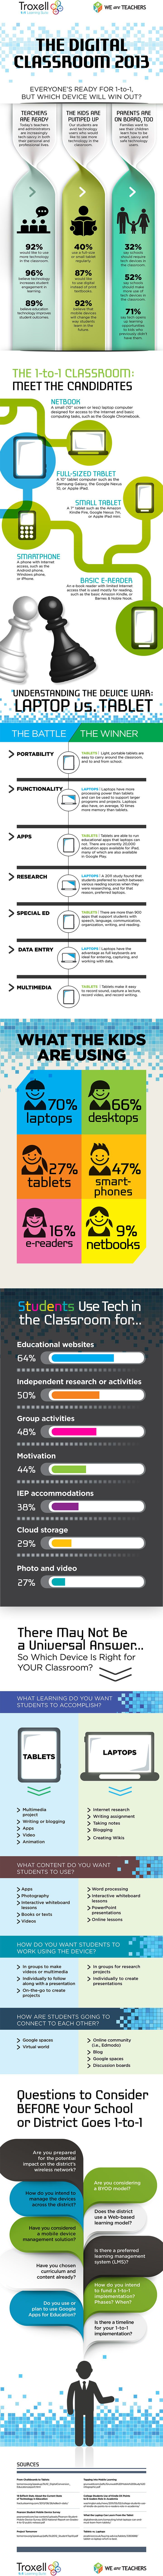 In the race to 1:1, which device will win out? #infographic #education #edtech #elearning